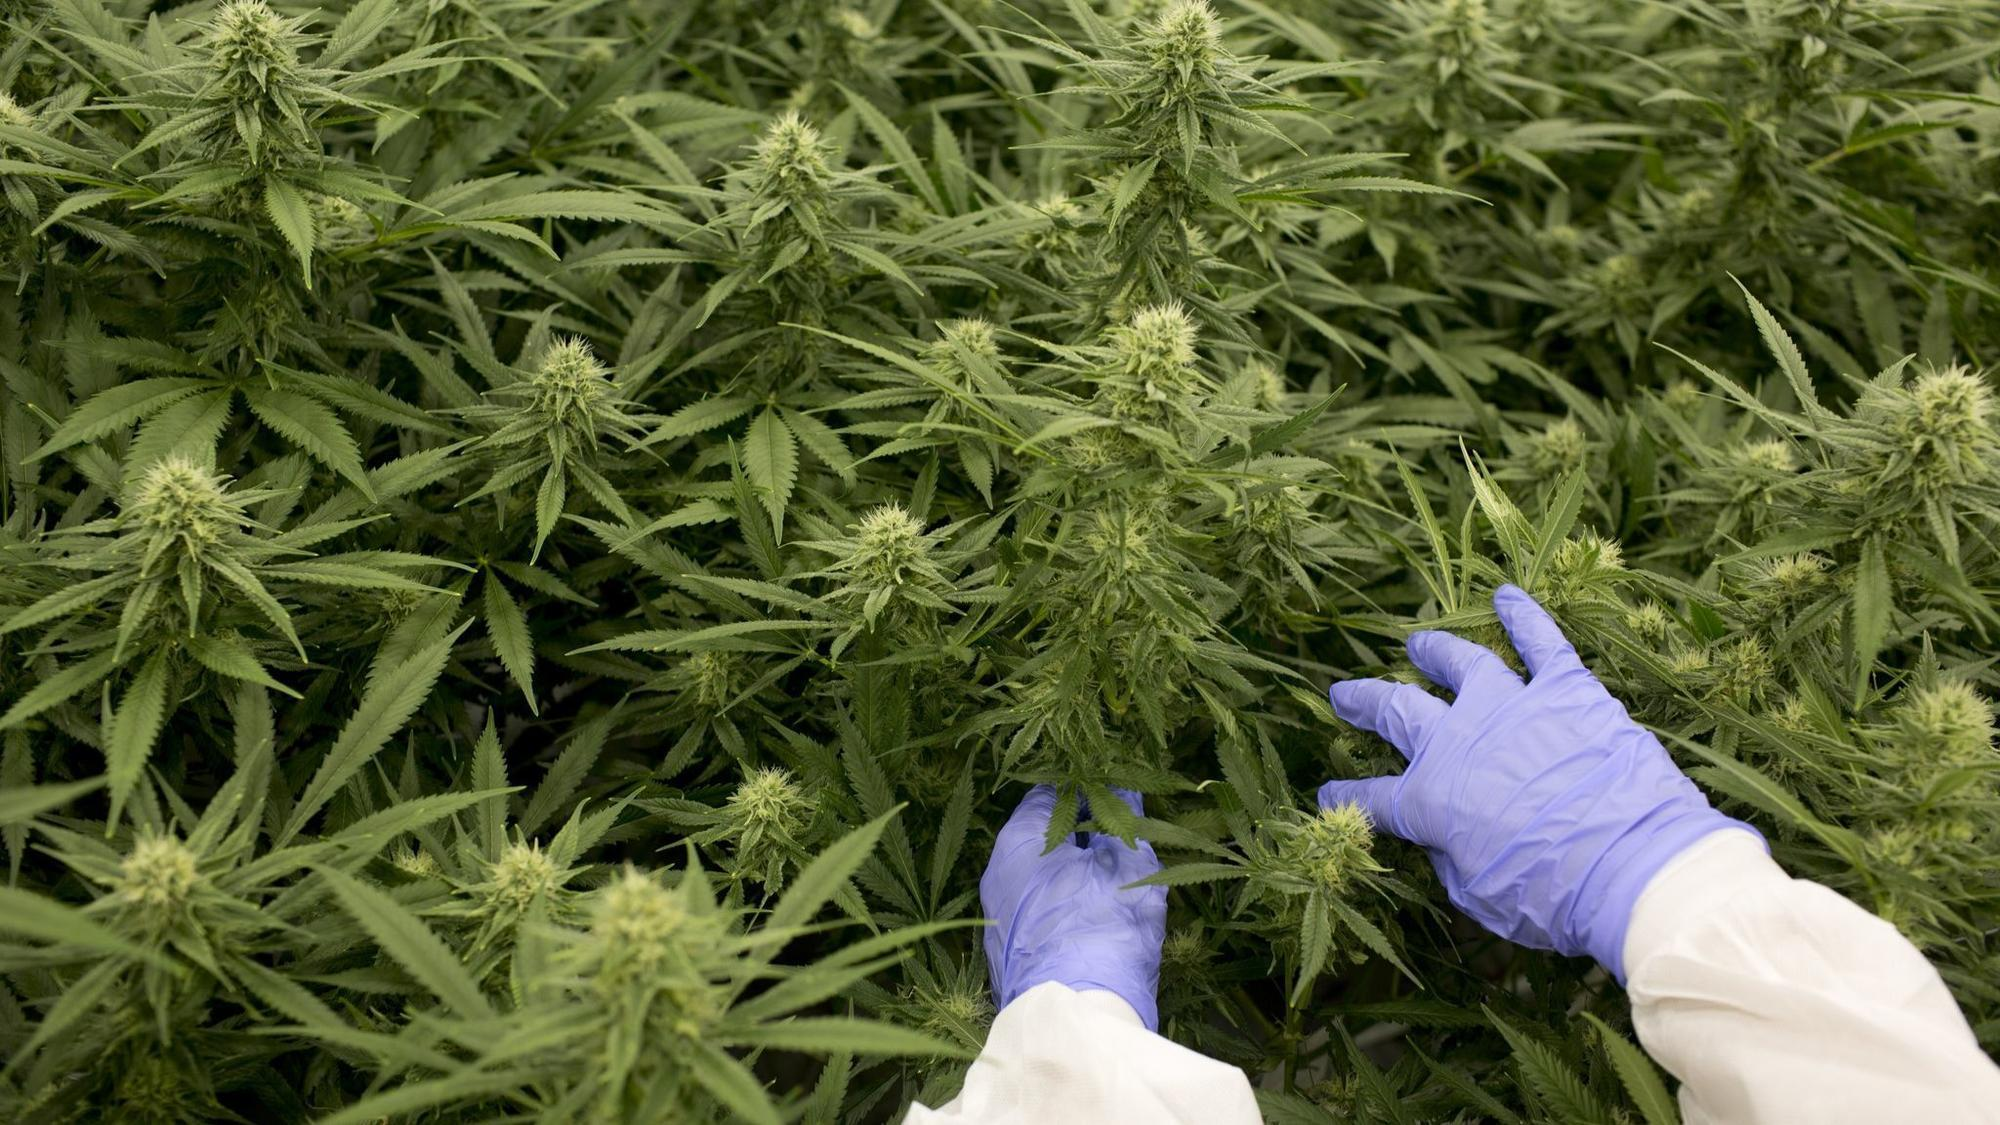 Regulators Investigating Maryland Medical Marijuana Grower